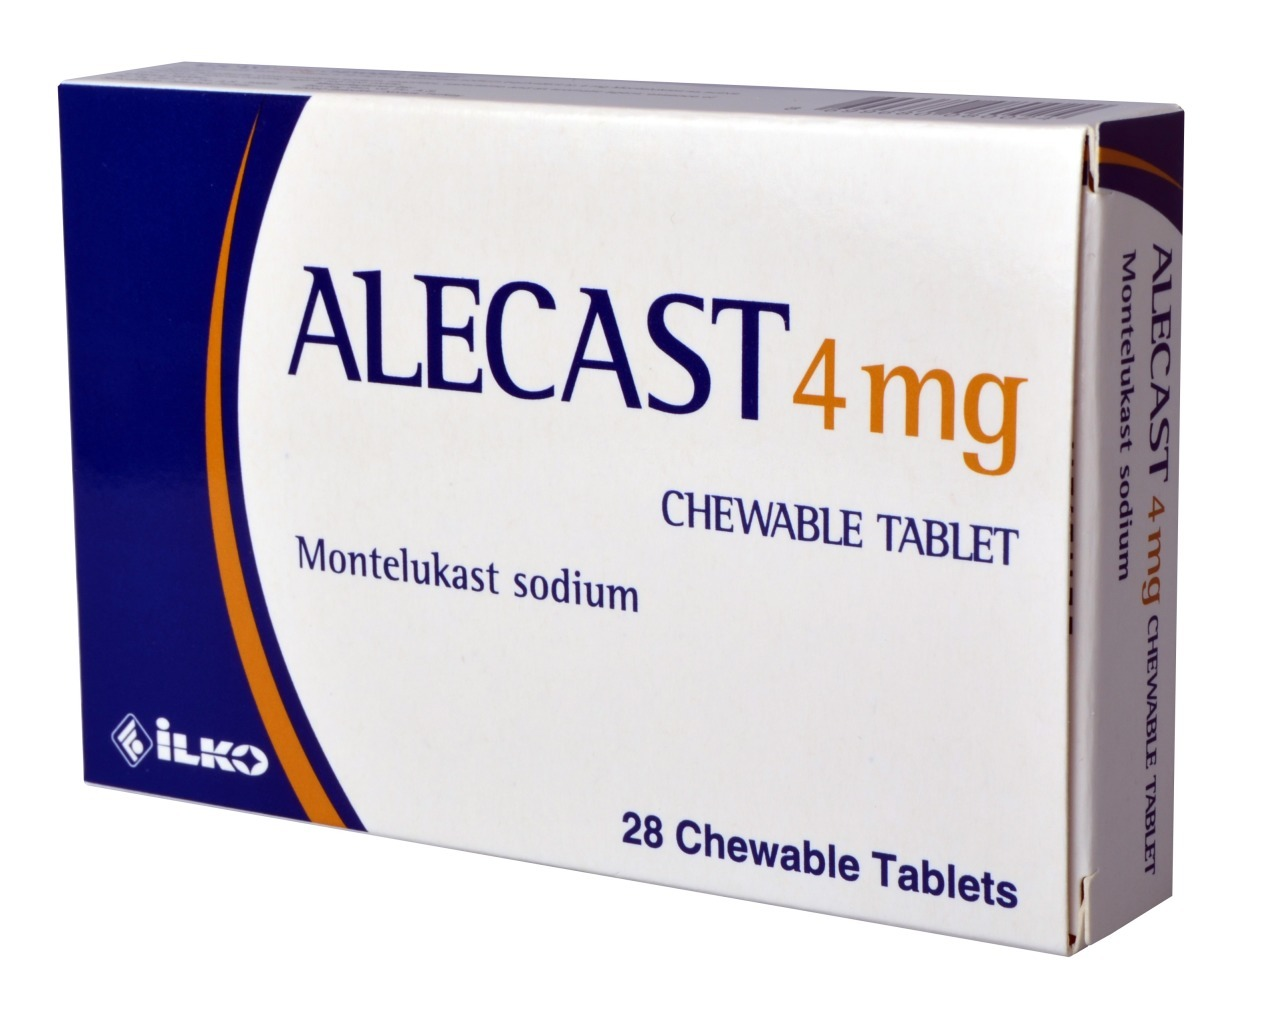 Montelukast sodium and chewable tablets